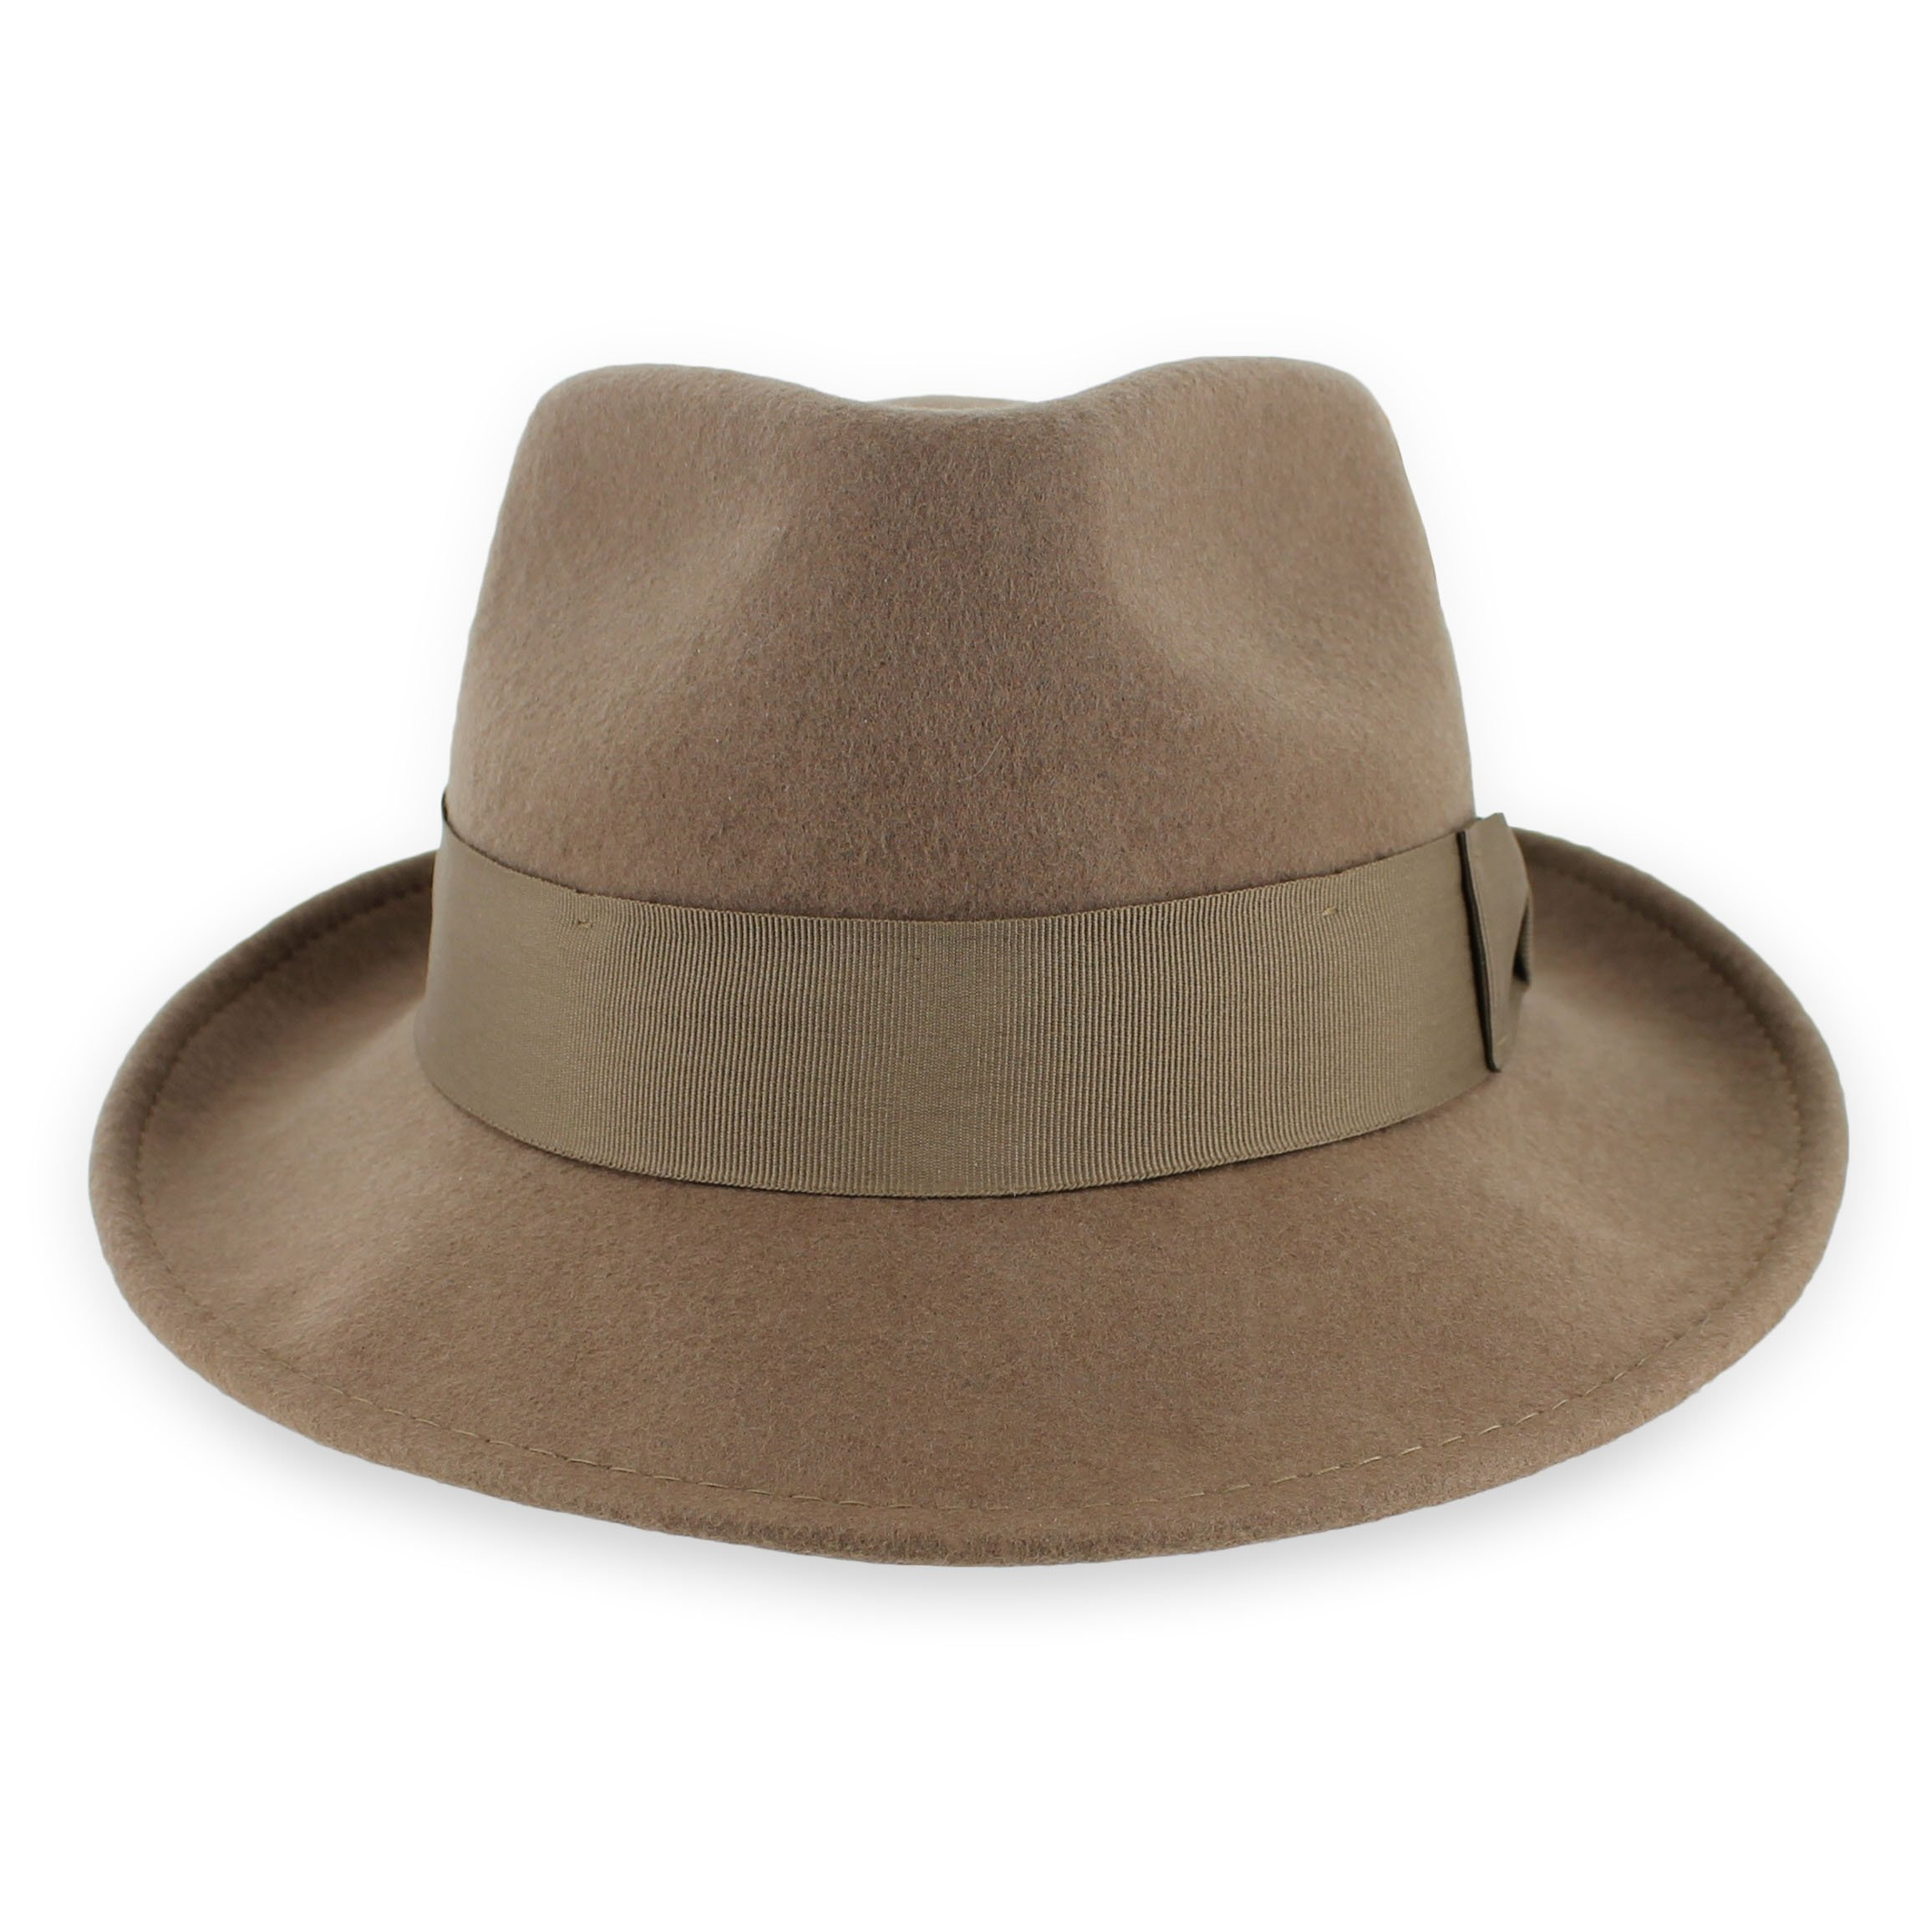 Belfry Gangster 100% Wool Stain-Resistant Crushable Dress Fedora in 4 Colors (XXLarge, Pecan)